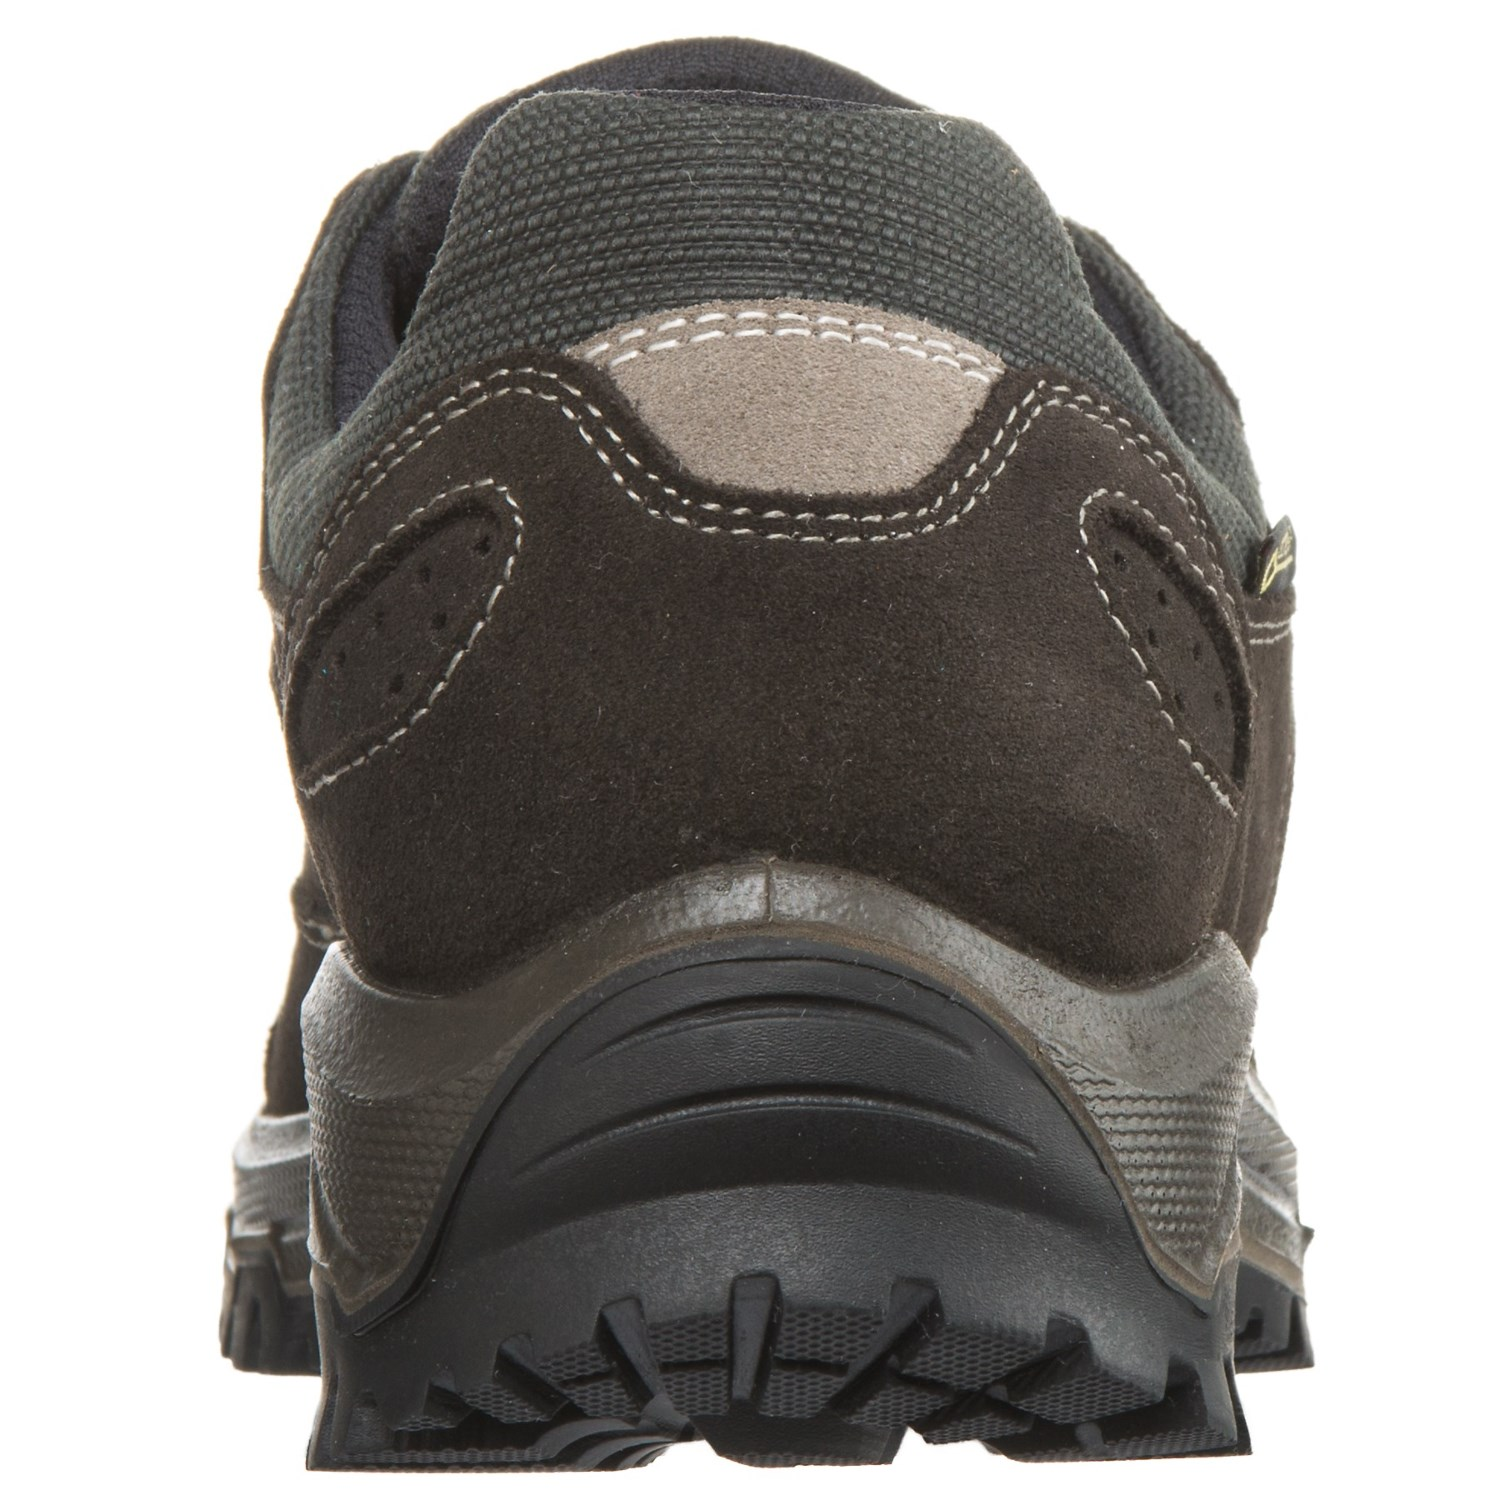 c90ed5558d Scarpa Stratos Gore-Tex® Hiking Shoes - Waterproof (For Women)